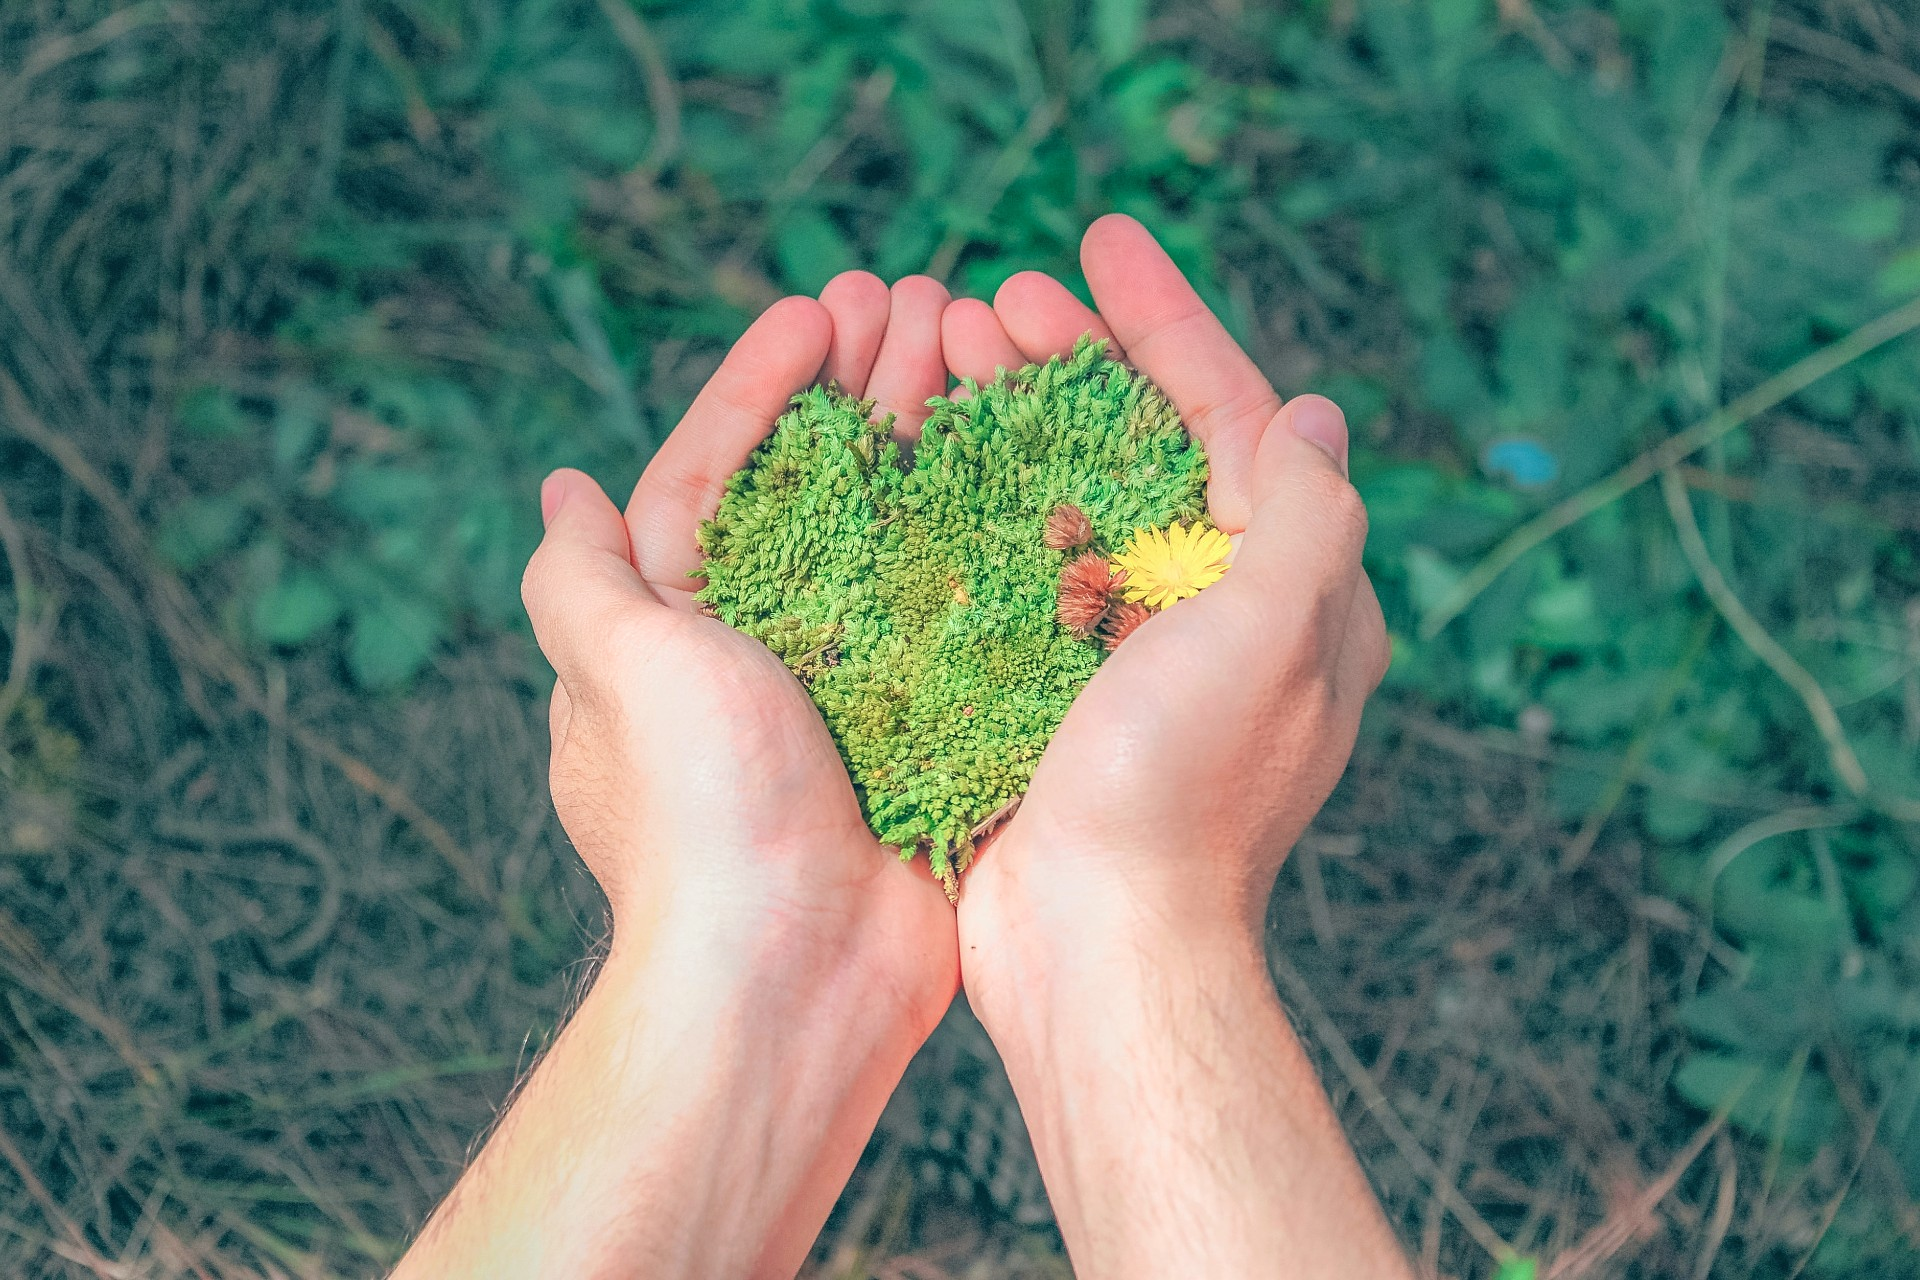 Eco-minded entrepreneurs are increasingly demonstrating that profit and sustainability are not mutually exclusive and can build brand loyalty.